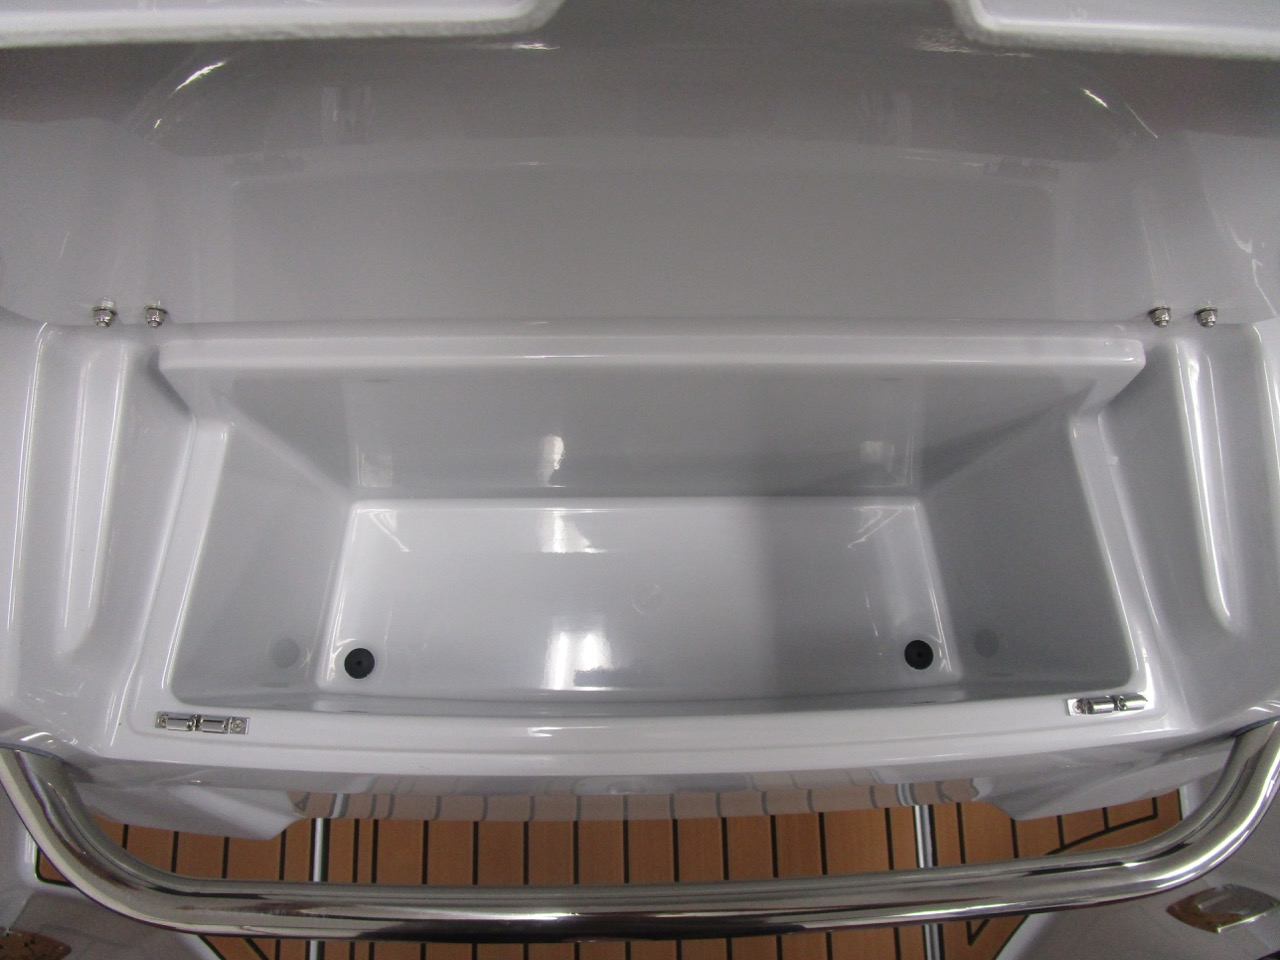 GRAND G750 RIB deep helm seat top locker